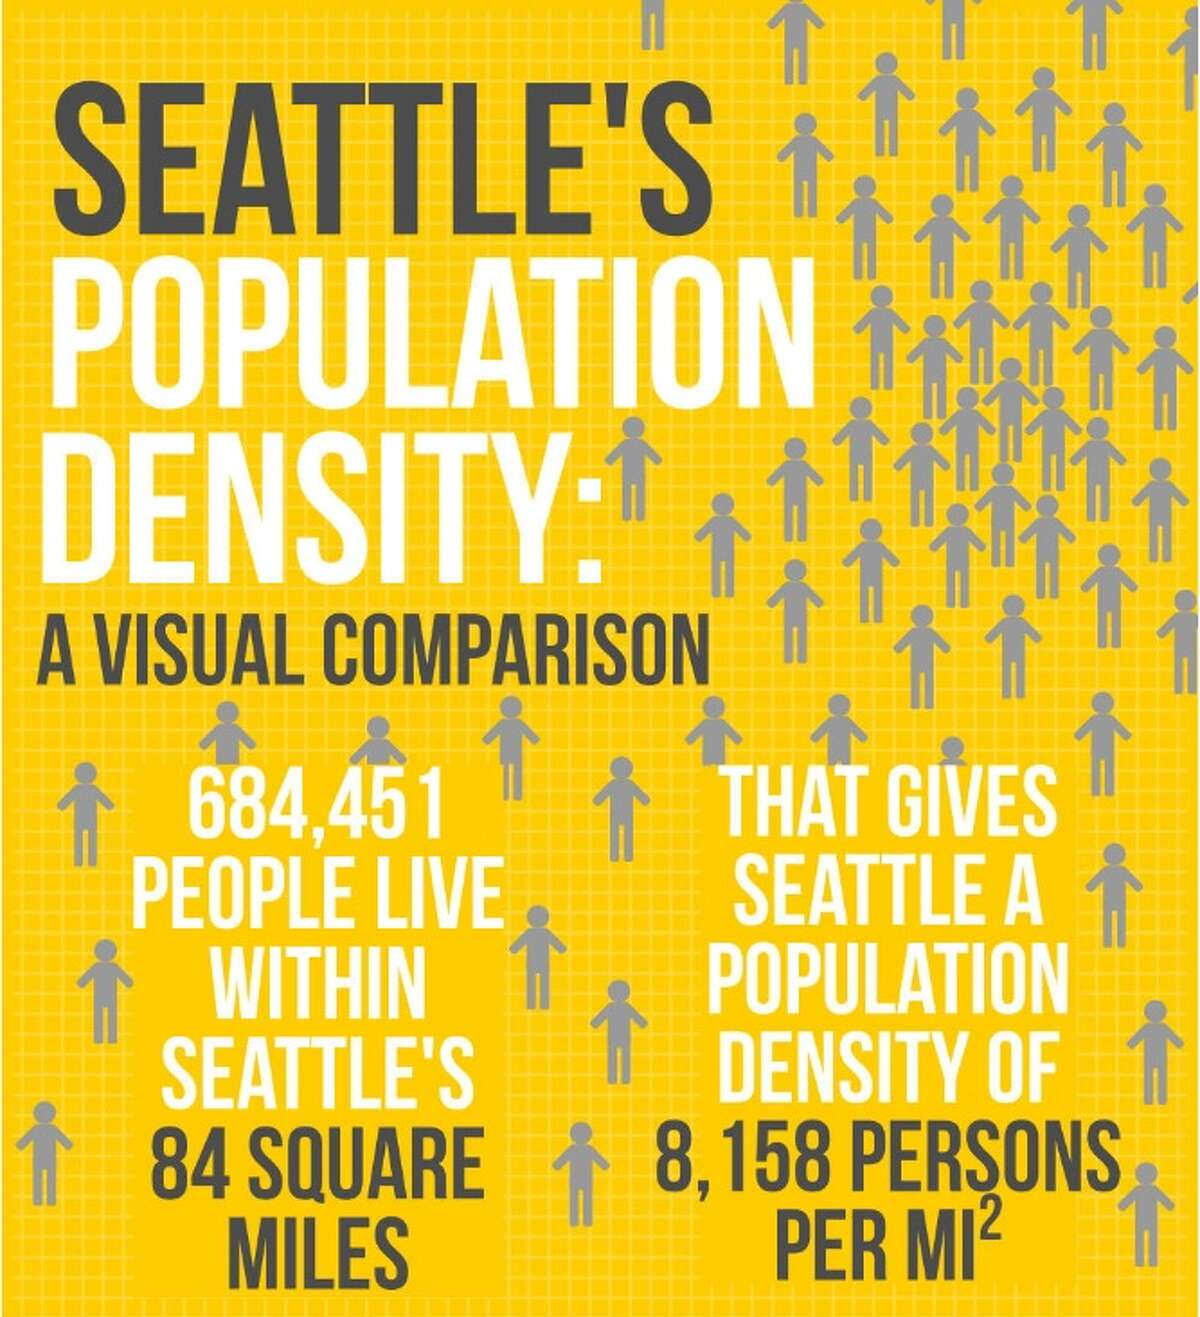 Sparefoot looked at Seattle's population density and compared it with a host of other cities. These maps show how much space our population would take up if it were the same density of those other cities. Some would take up a bit more space, but some would take up significantly less.